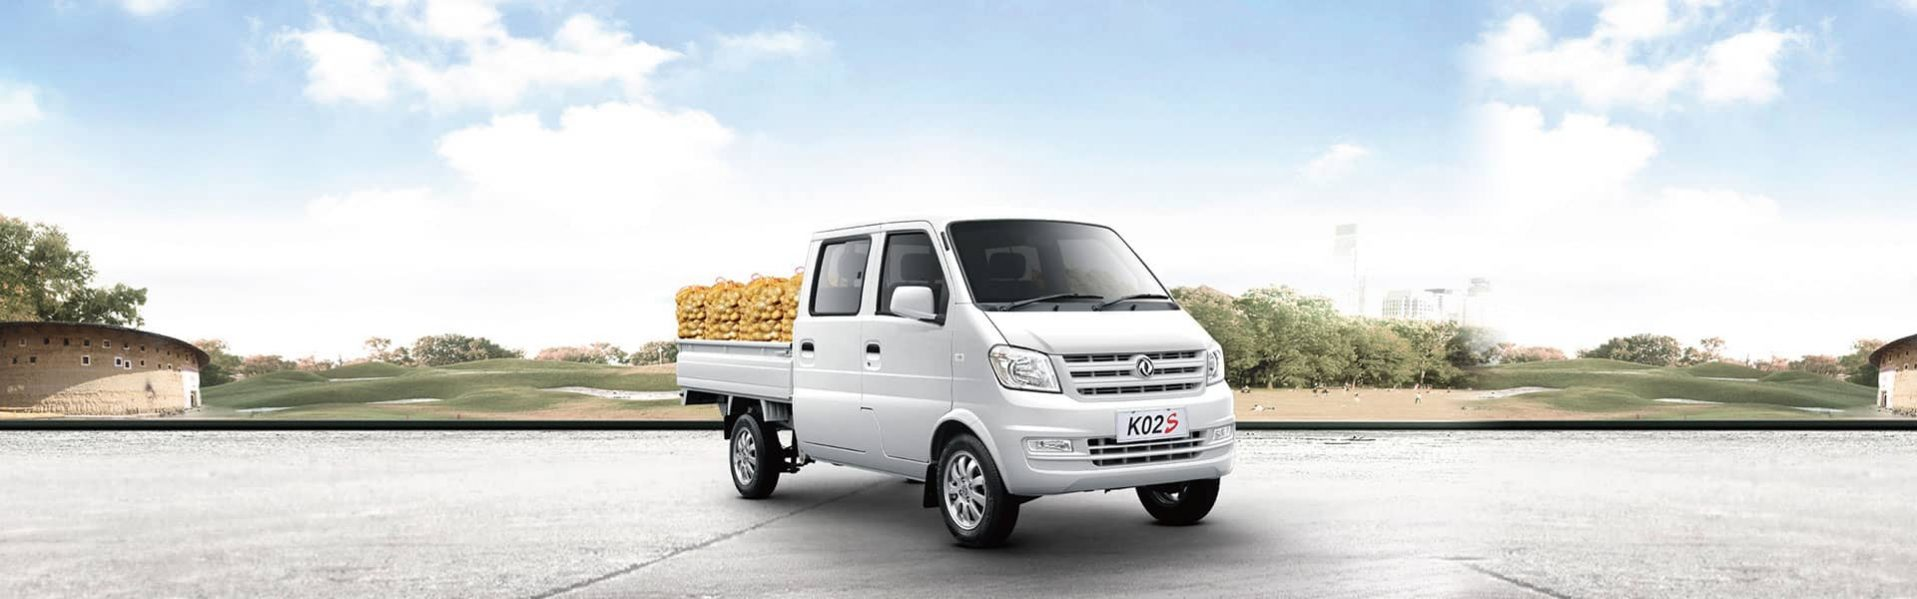 dongfeng K02s